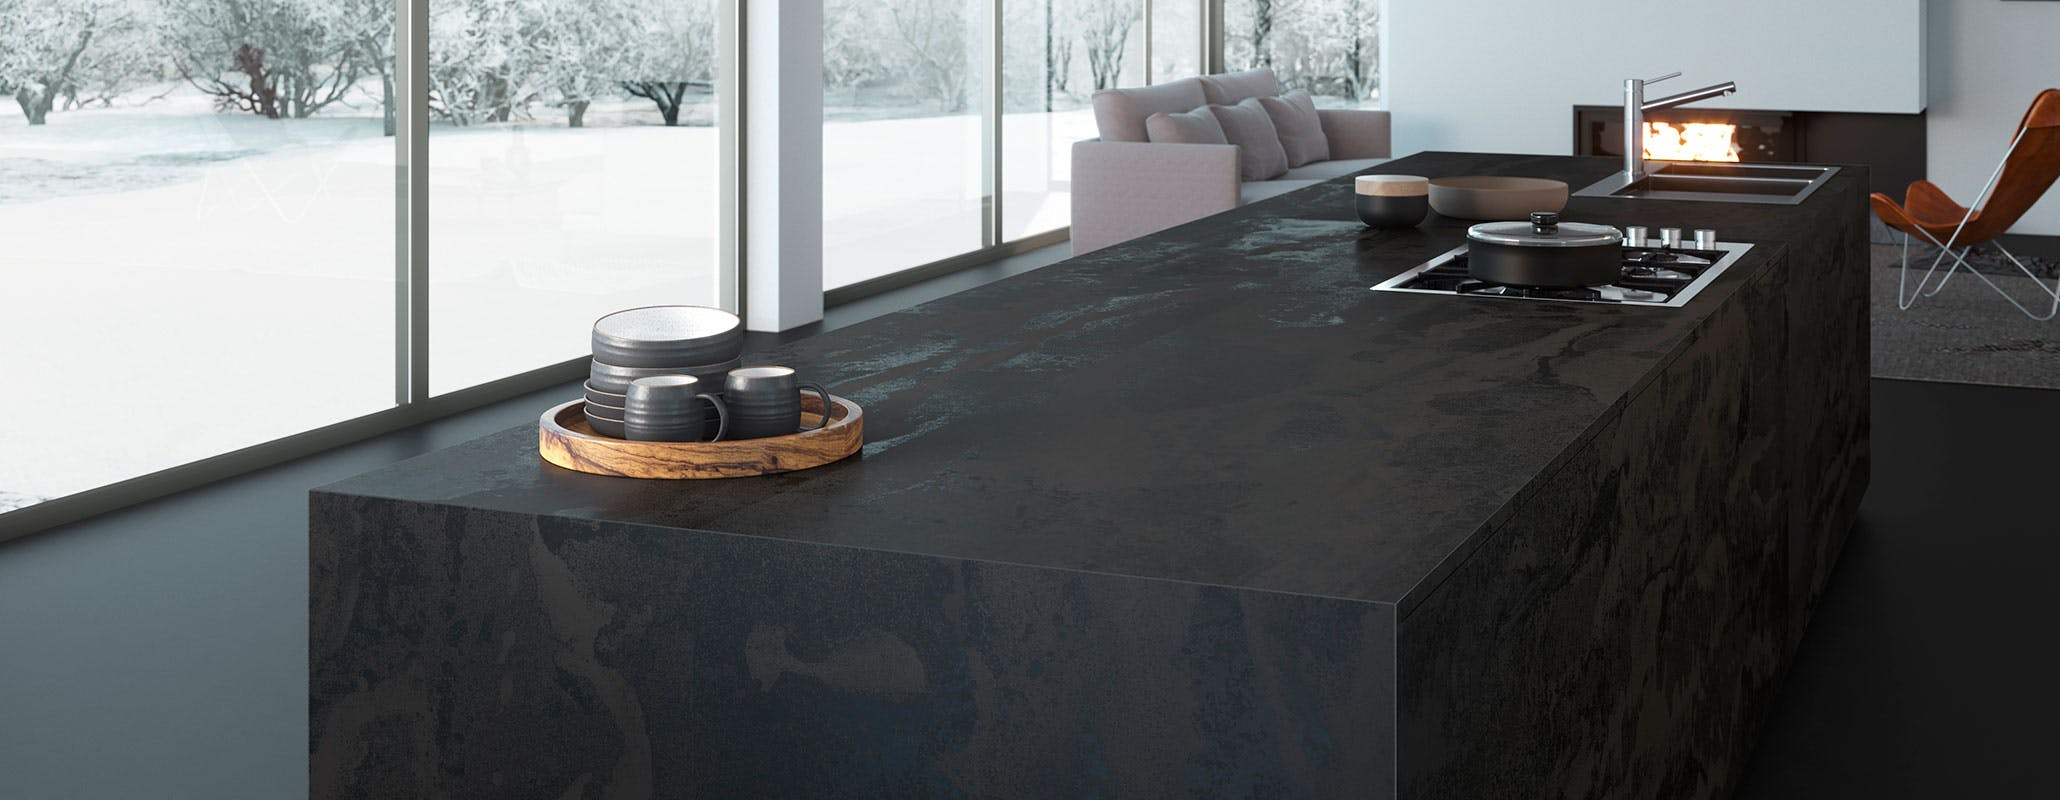 Top Cucina Dekton.Dekton Superfici Ultracompatte Per Top Cucina Di Design